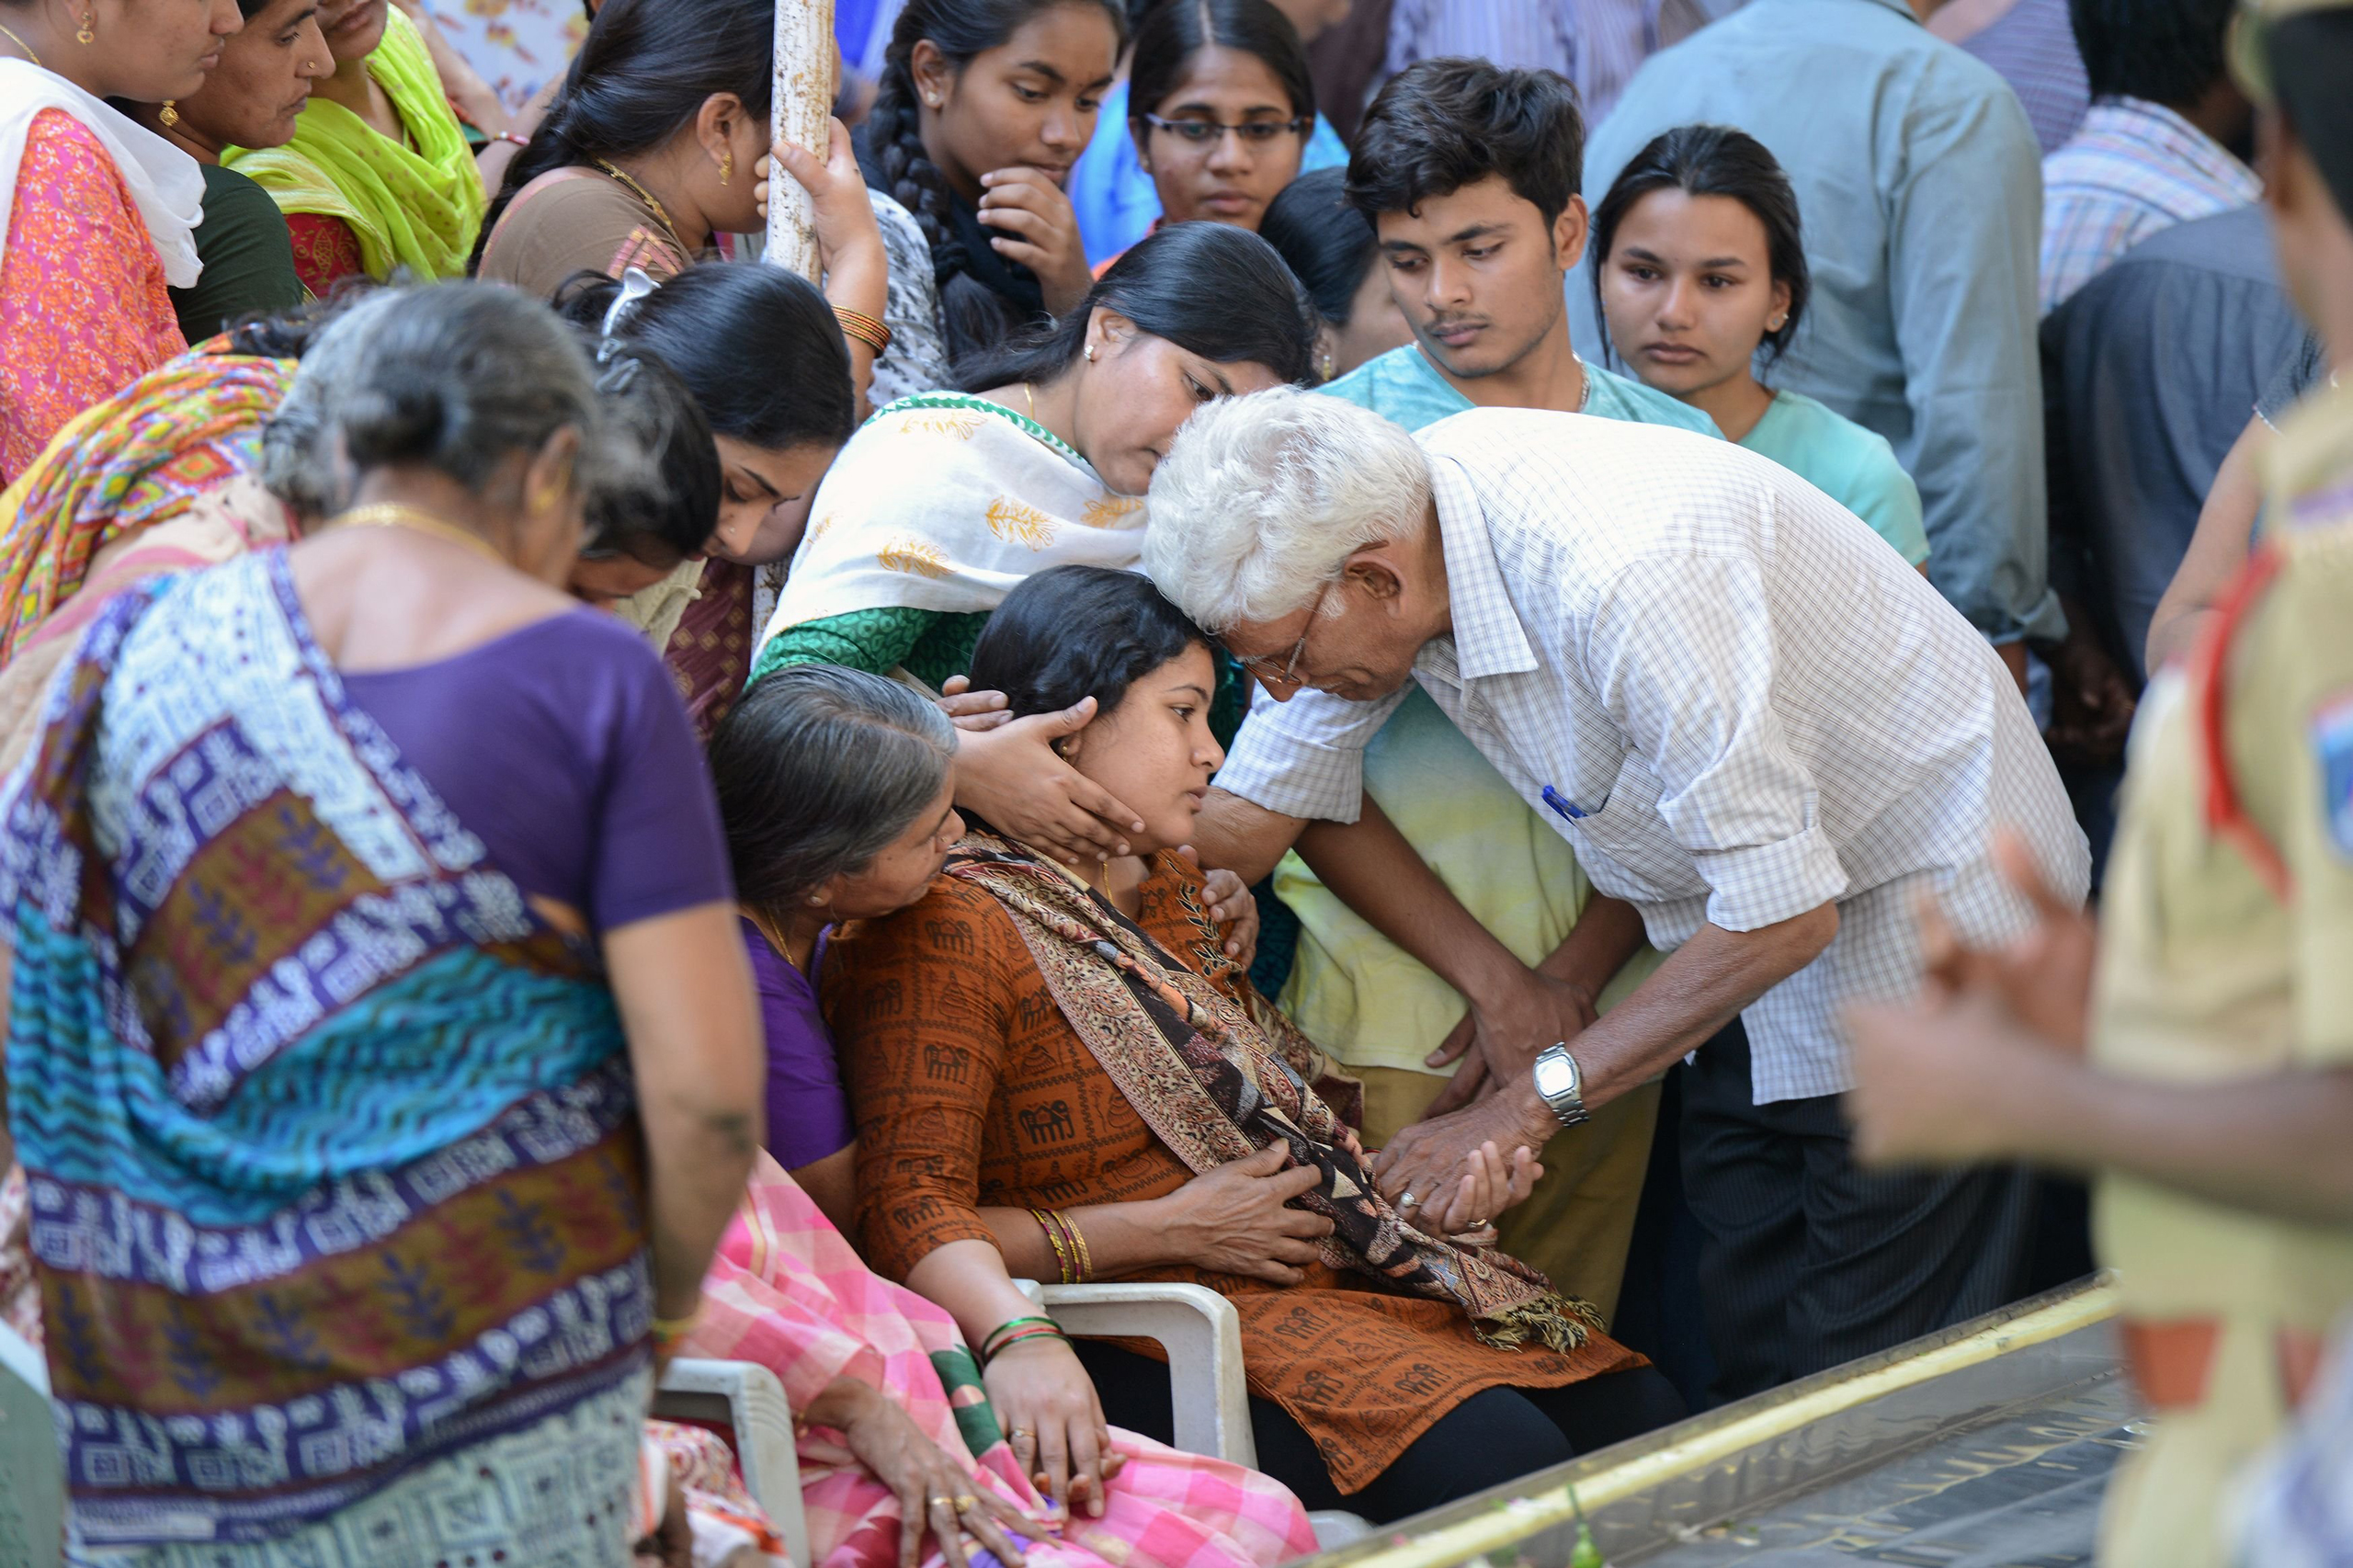 Sunayana Dumala, wife of the Indian engineer, Srinivas Kuchibhotla, who was shot dead in a Kansas bar, is consoled by family members at his funeral in Hyderabad on Feb. 28, 2017.